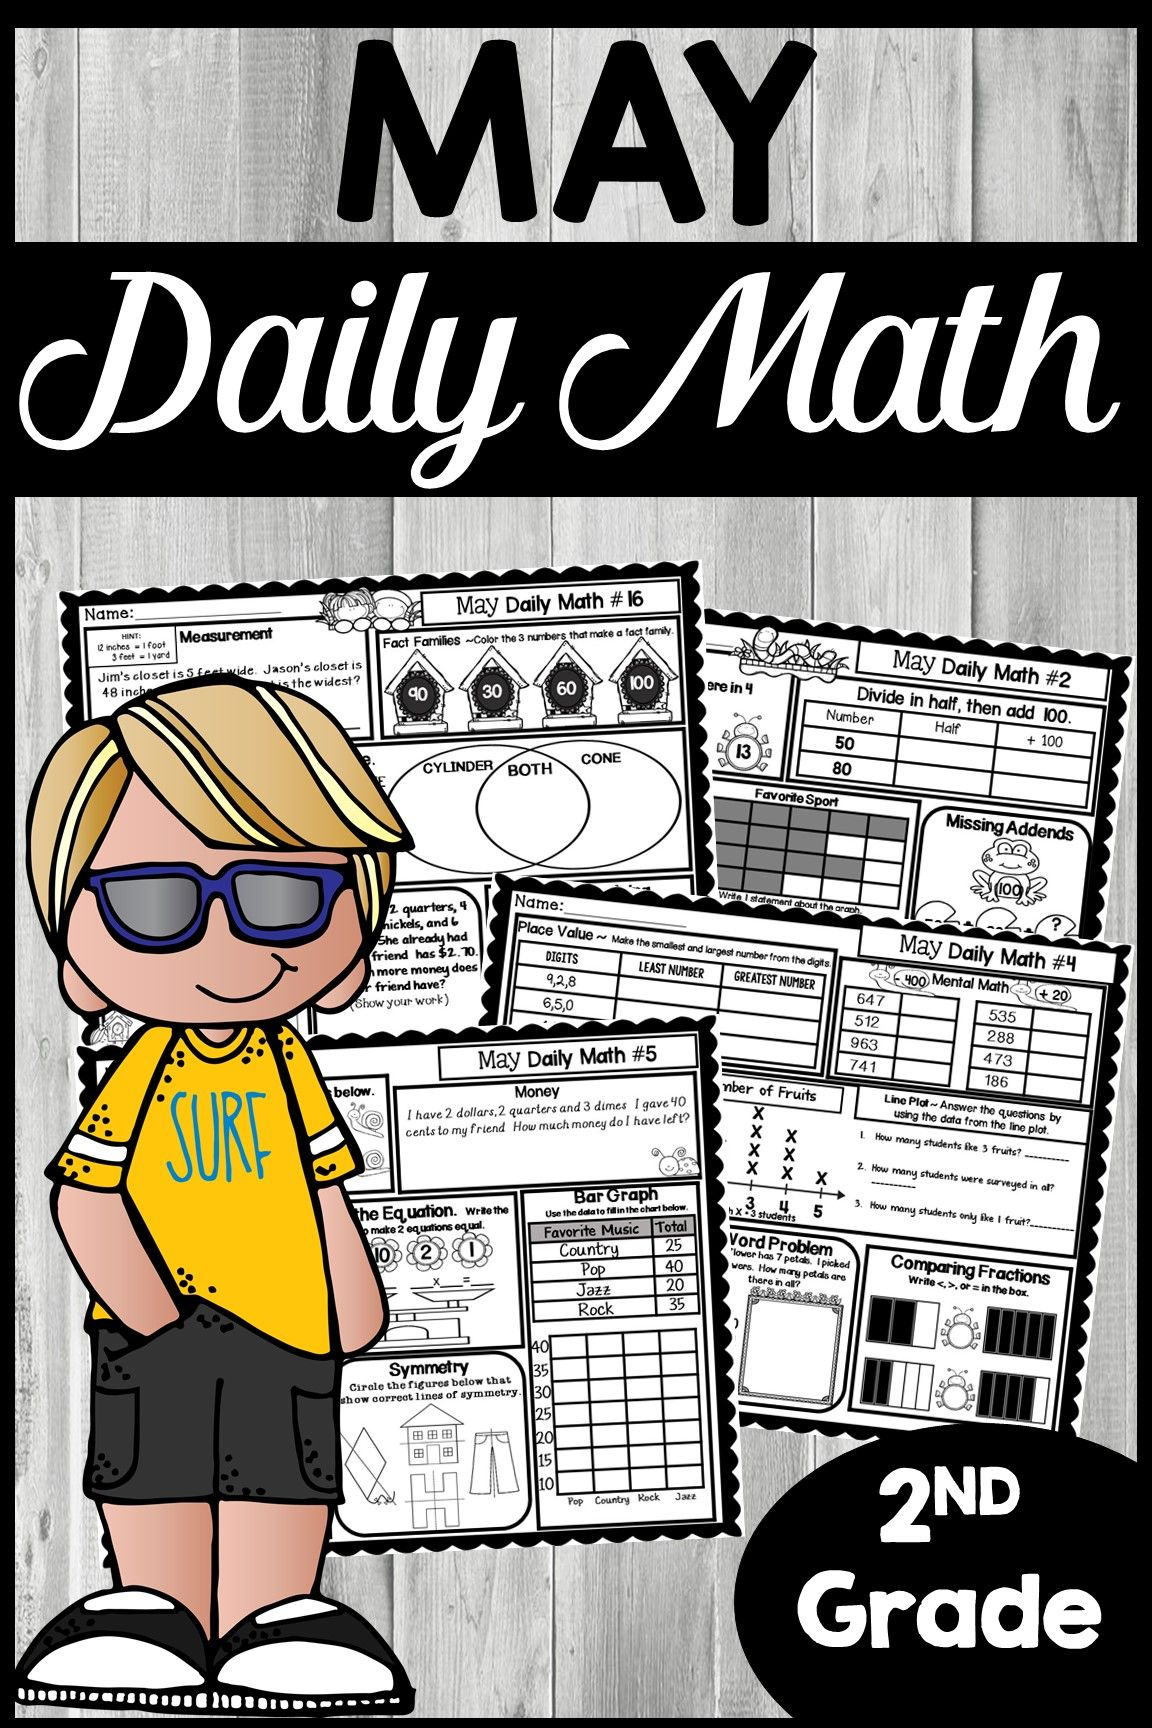 May Morning Work 2nd Grade | Daily Math | TpT Math Lessons | Daily